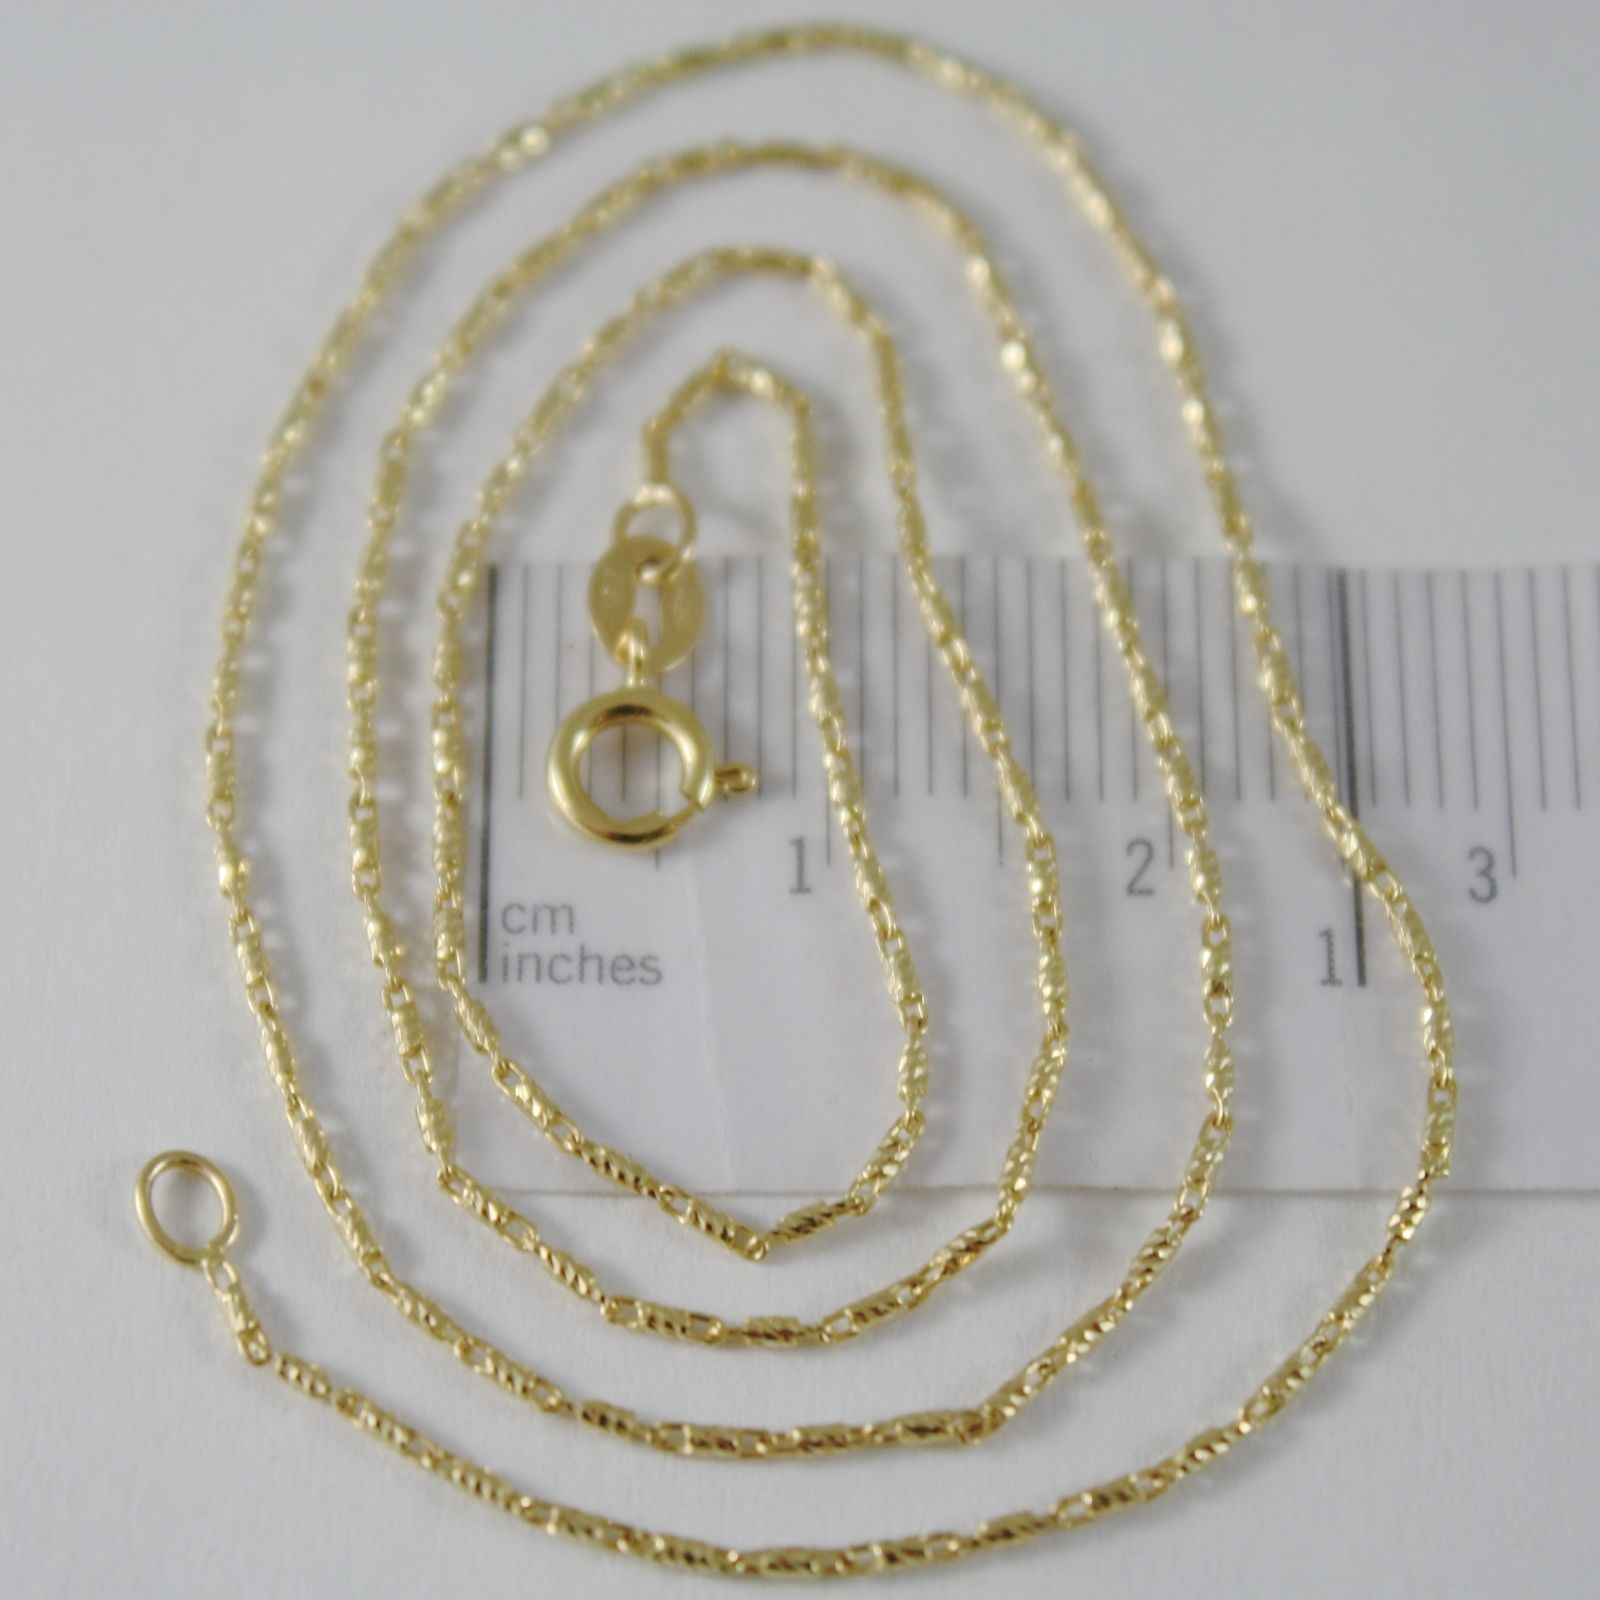 SOLID 18K YELLOW GOLD FINELY WORKED TUBE CHAIN 20 INCHES, 1 MM, MADE IN ITALY